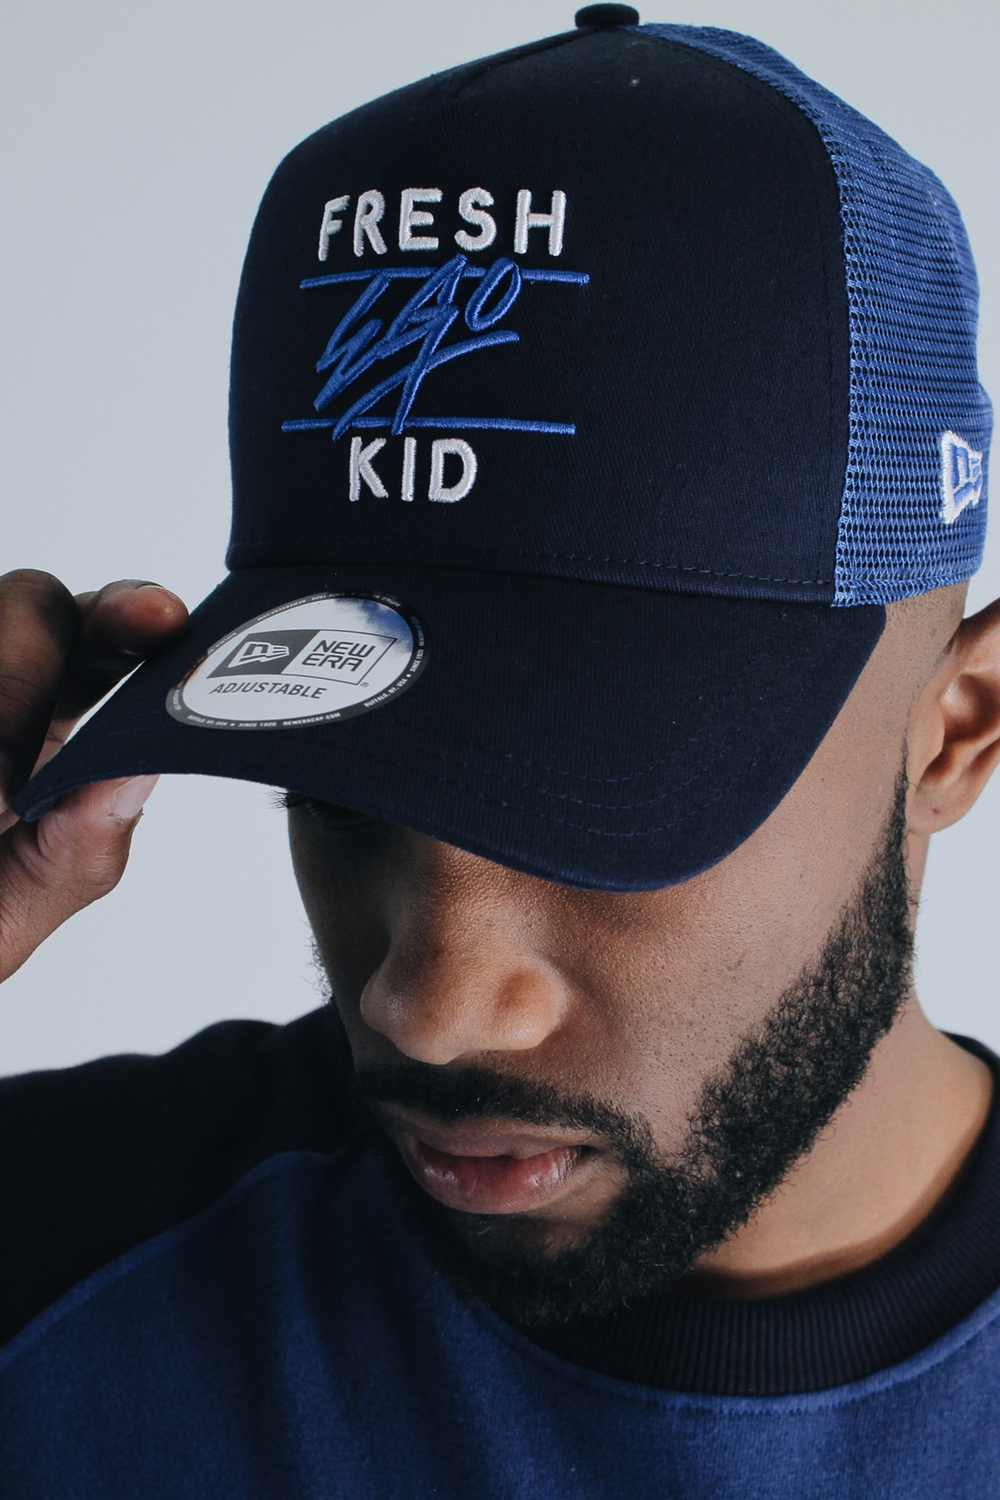 Fresh Ego Kid New Era Mesh Trucker Cap - Navy - 1